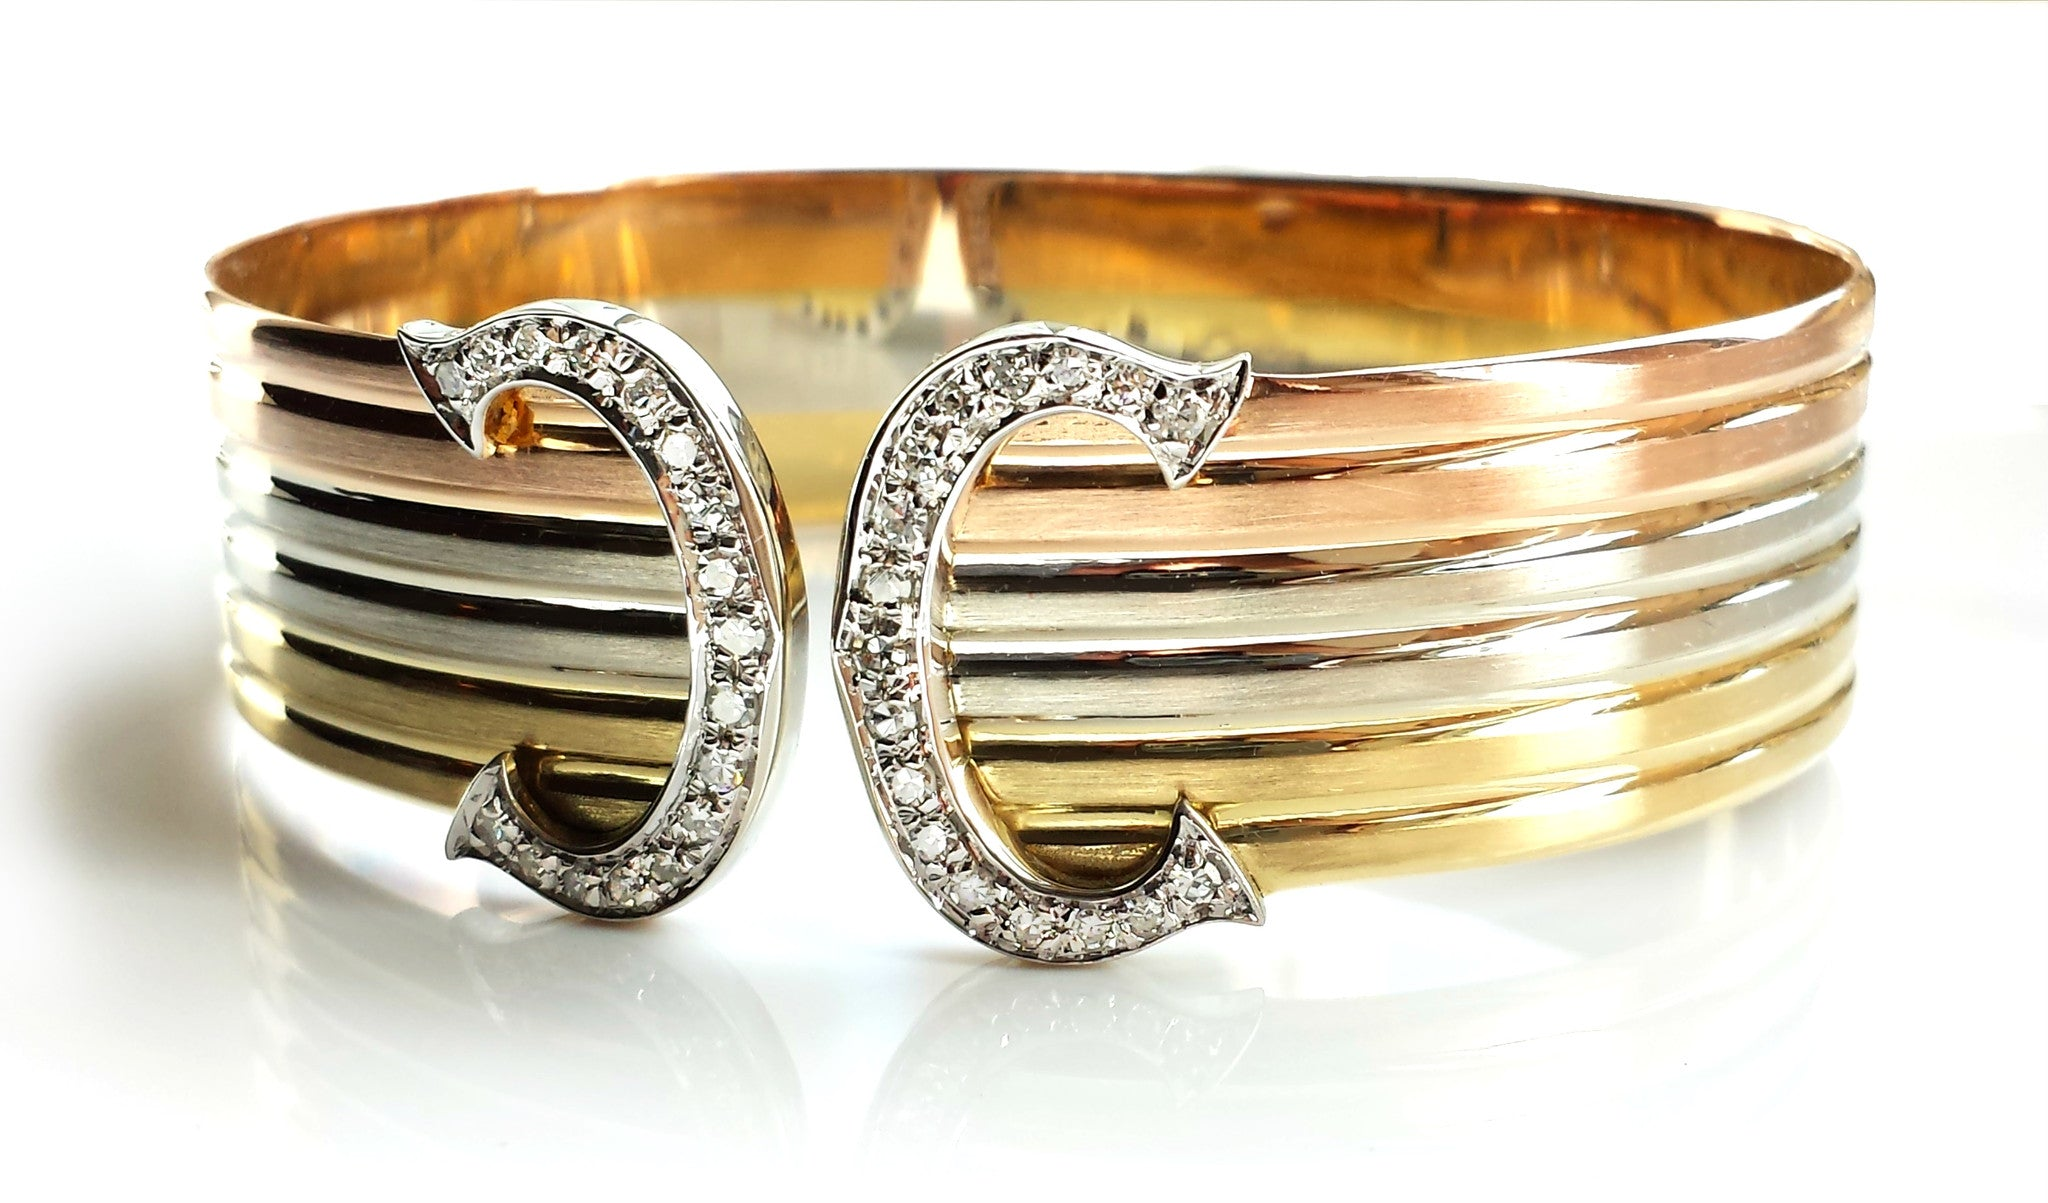 Cartier Double C 'de Cartier' Decor Trinity Bracelet in 18K gold & diamond setting